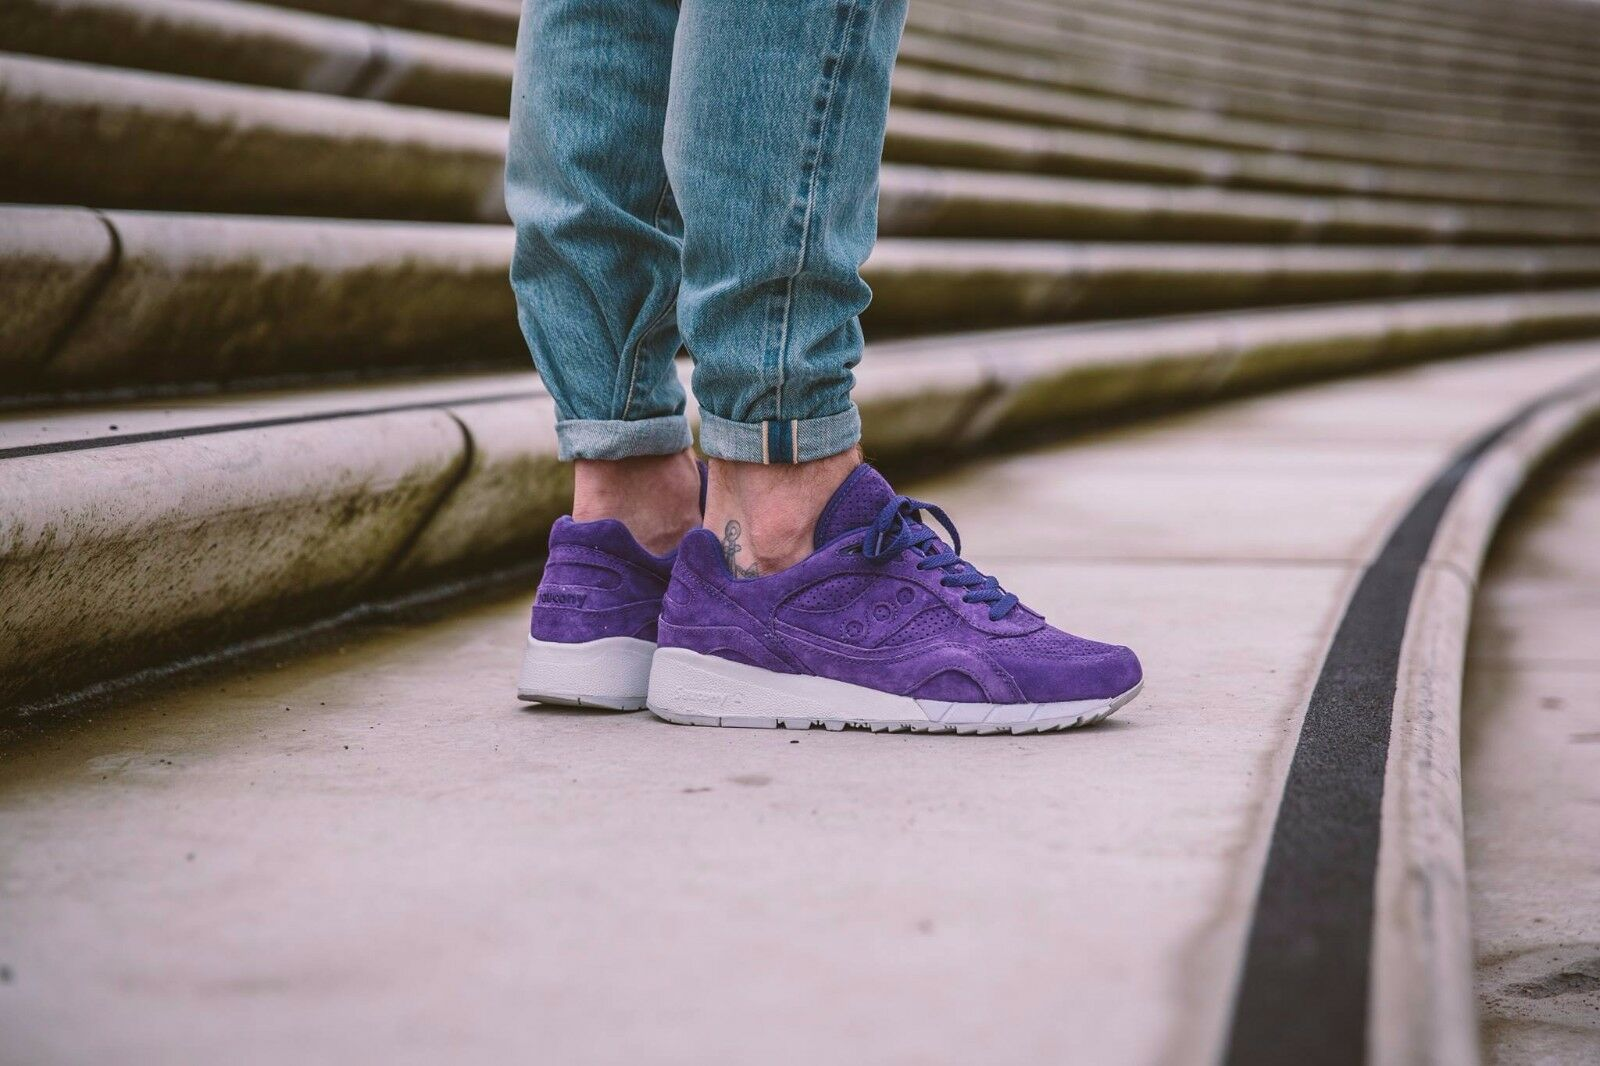 Saucony Shadow 6000 - S70222-3 - pur